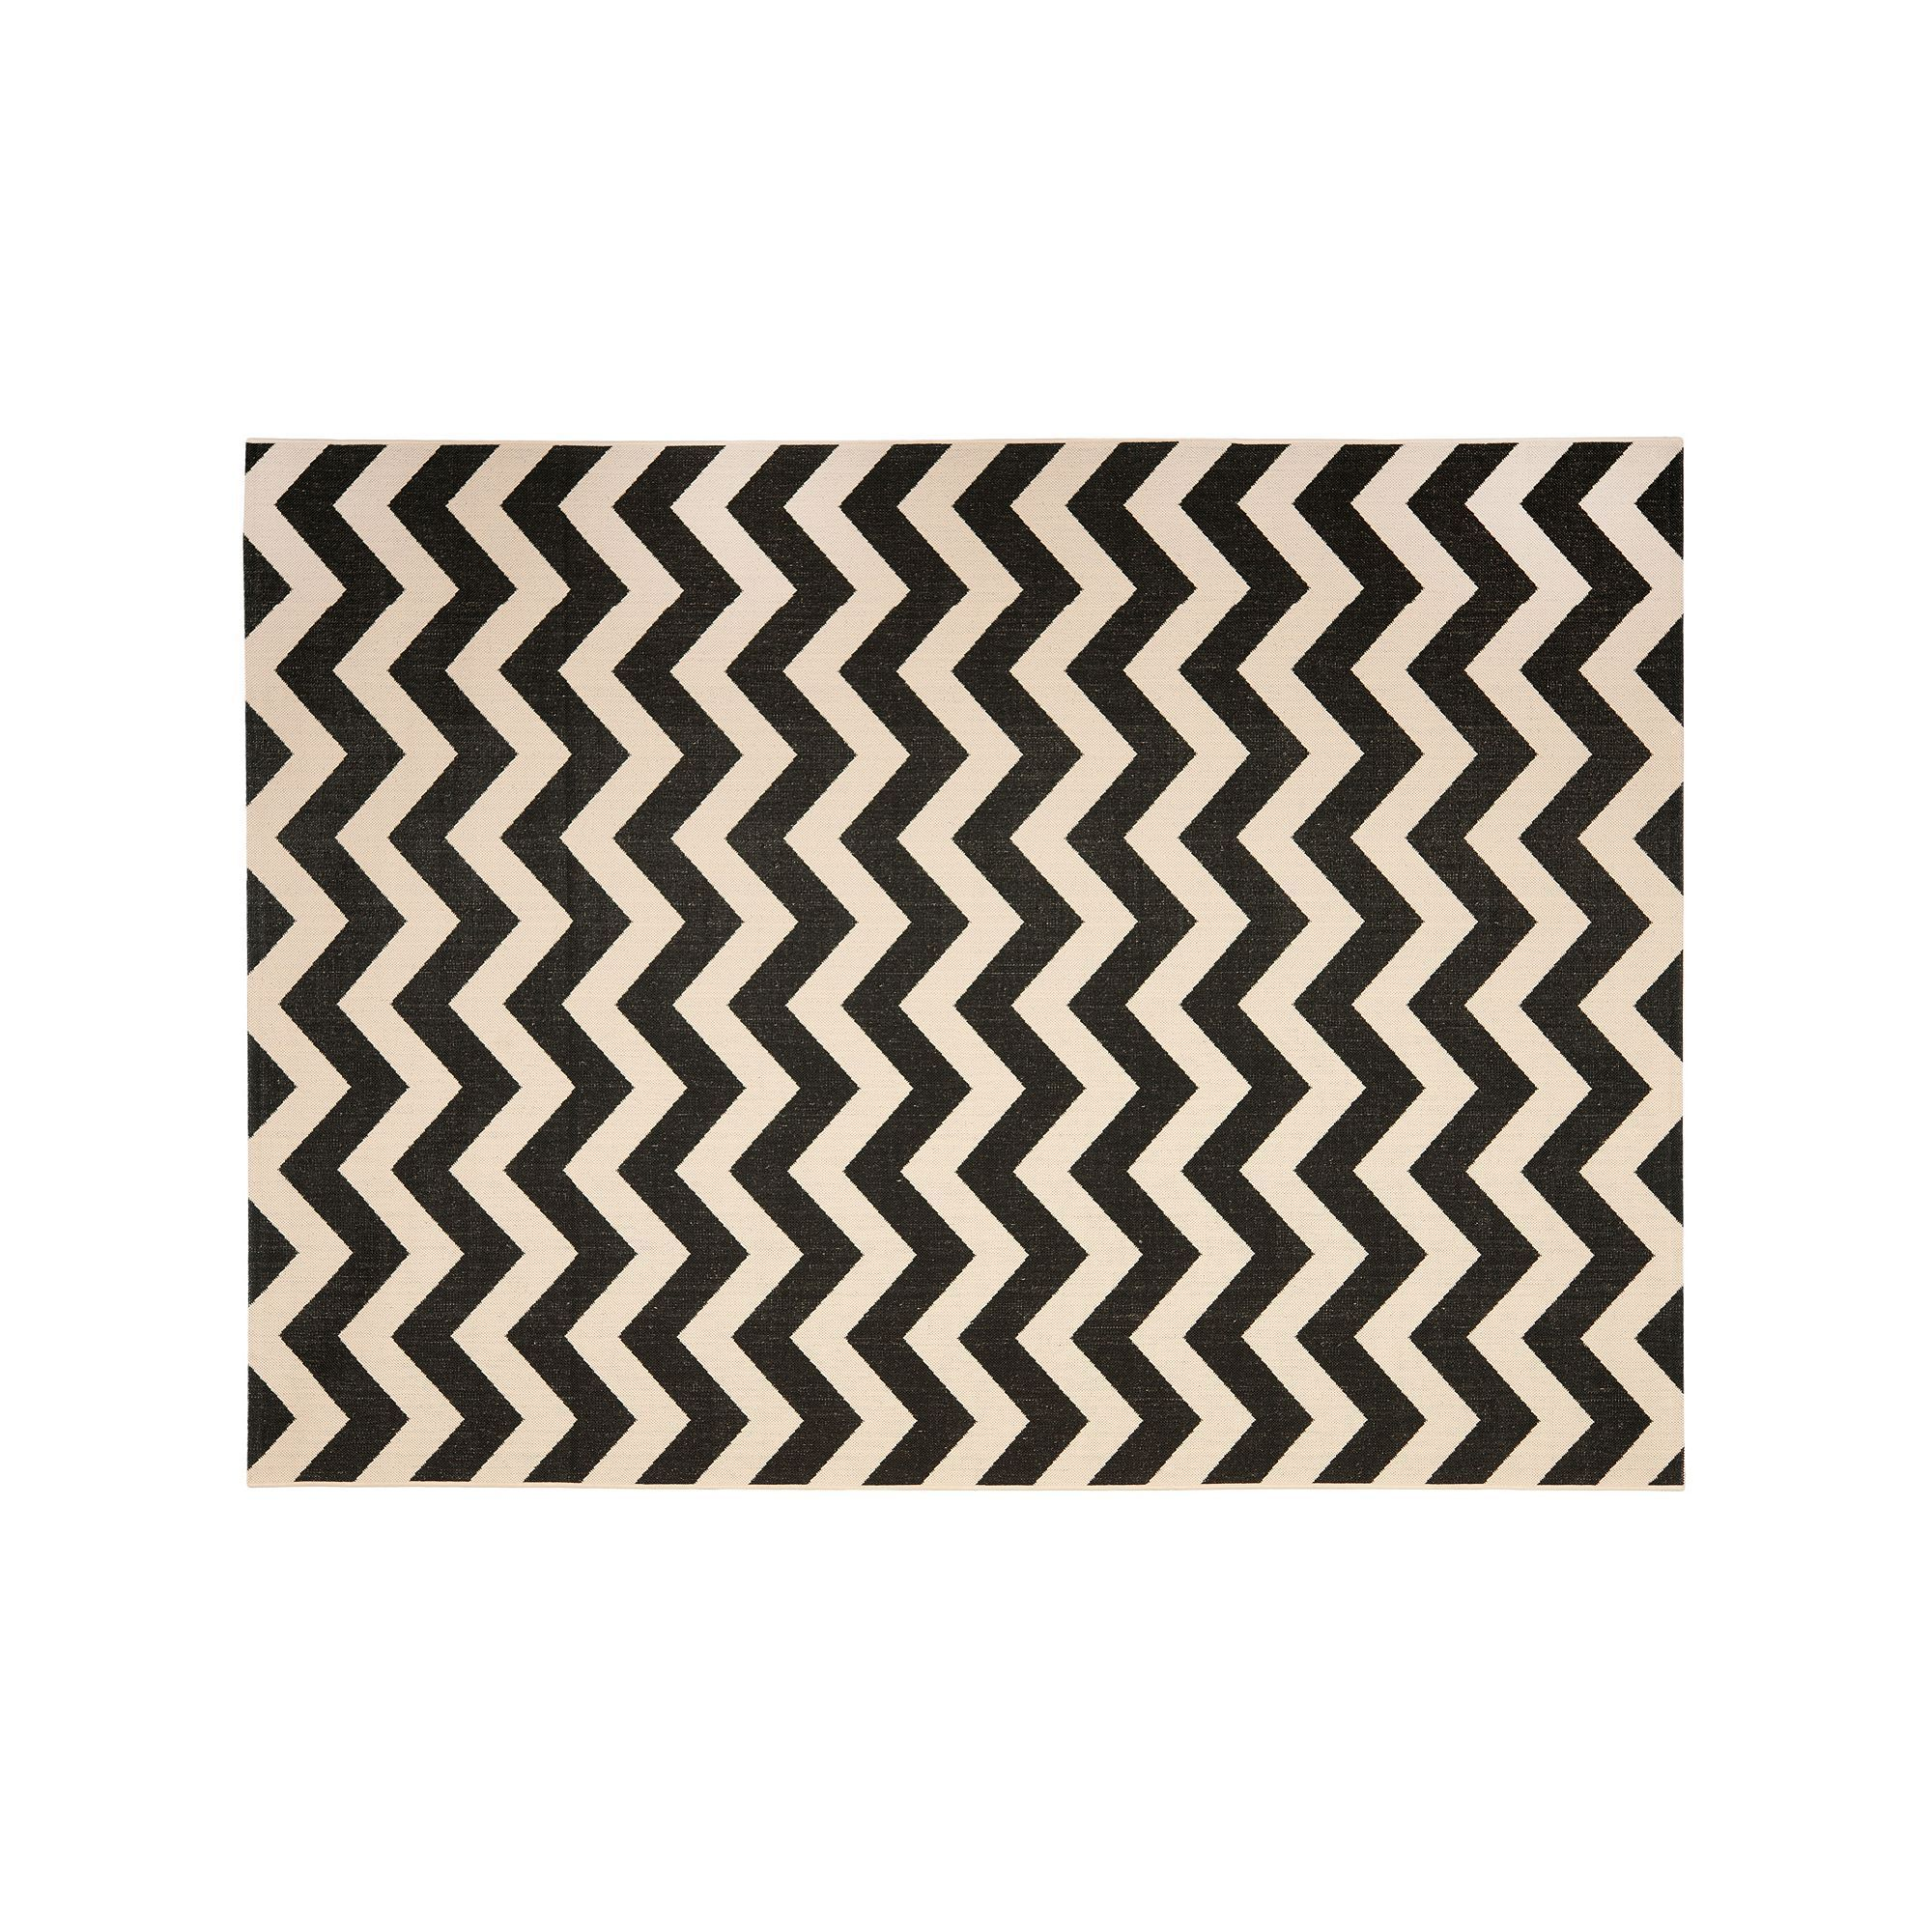 safavieh courtyard zigzag chevron indoor outdoor rug brown  - safavieh courtyard zigzag chevron indoor outdoor rug black durable